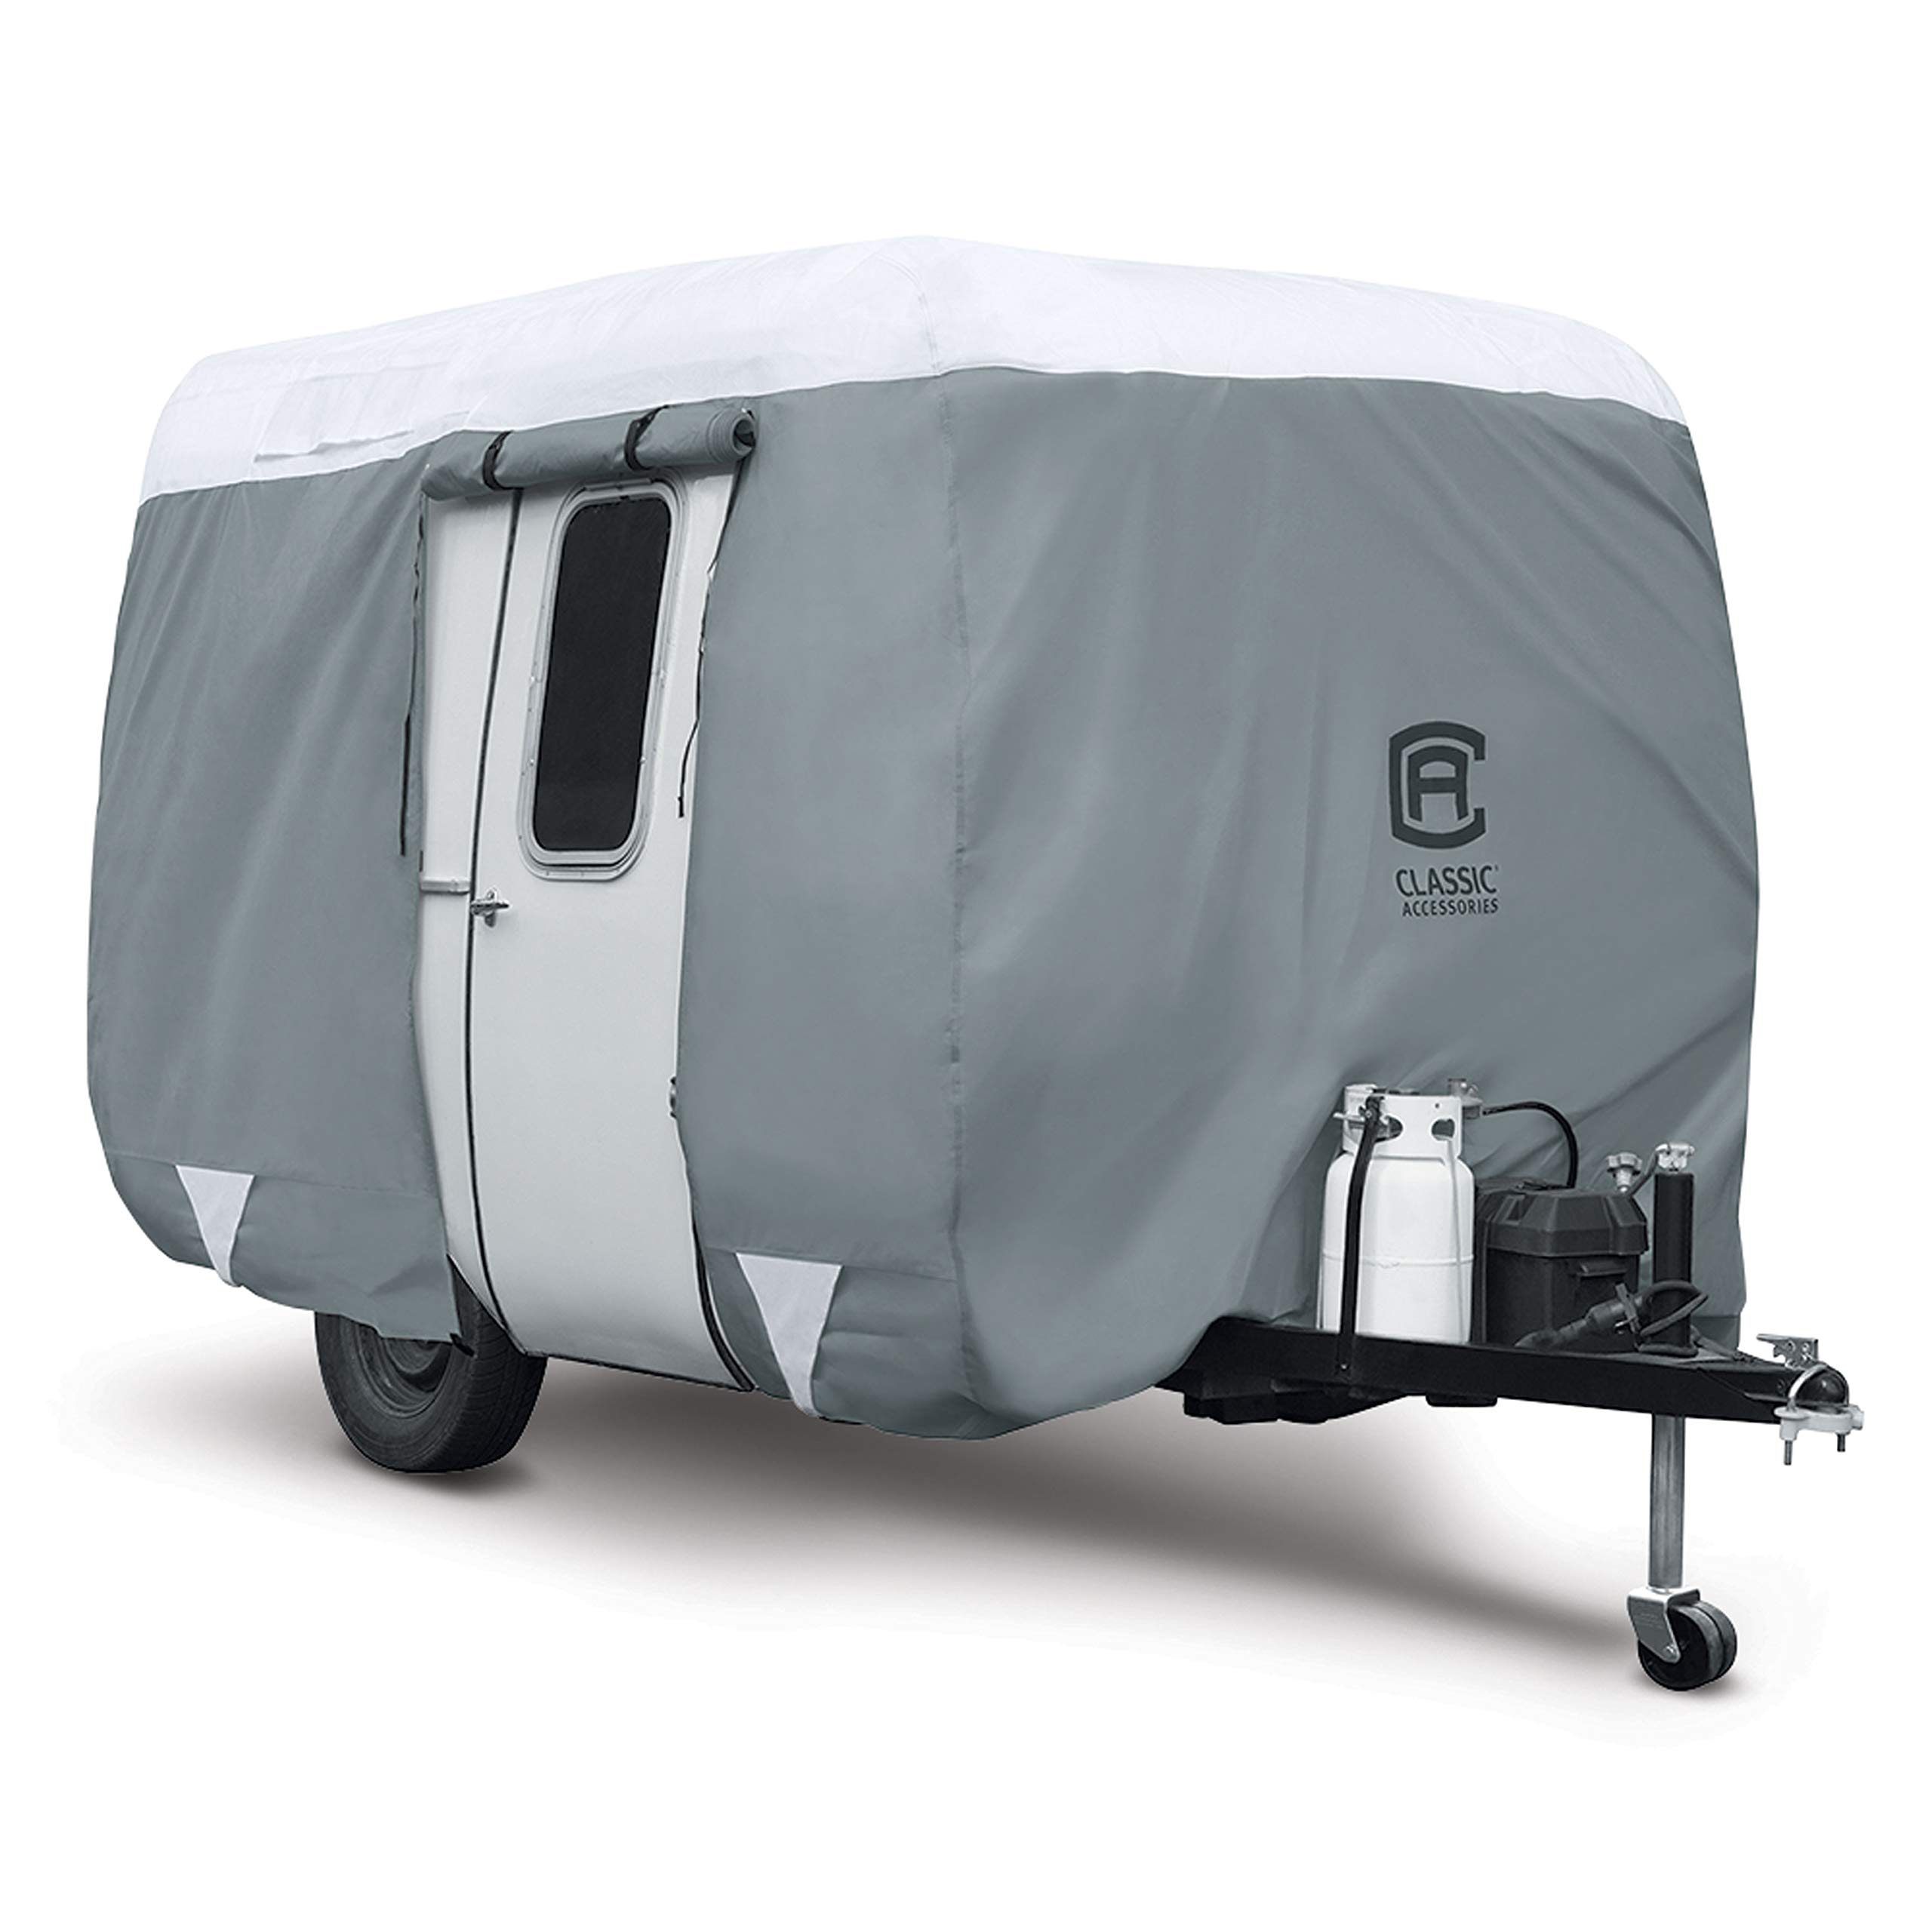 Classic Accessories PolyPro 3 Molded Fiberglass Camping Trailer Cover, 13'1''-16' Long by Classic Accessories